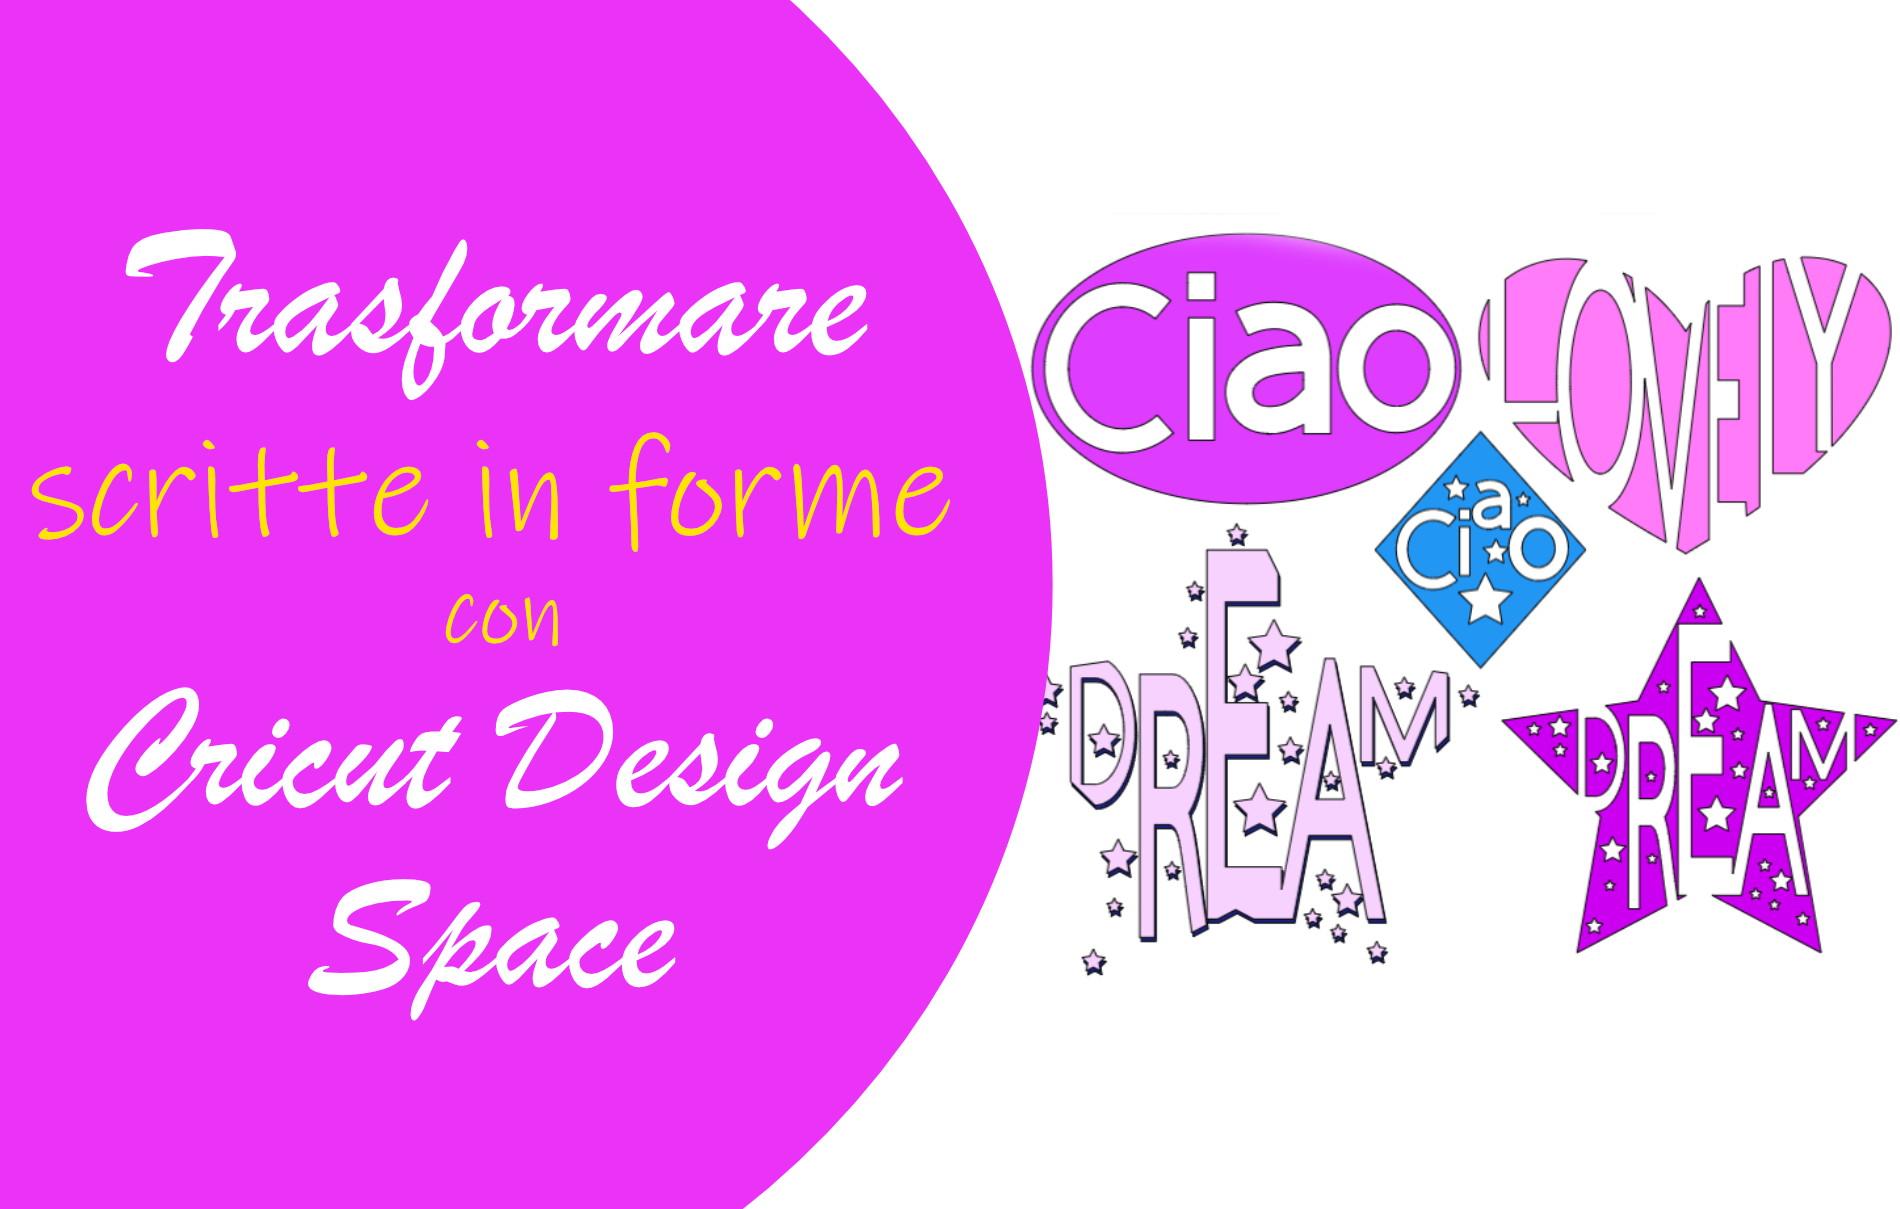 Trasformare parole in forme Cricut Design Space